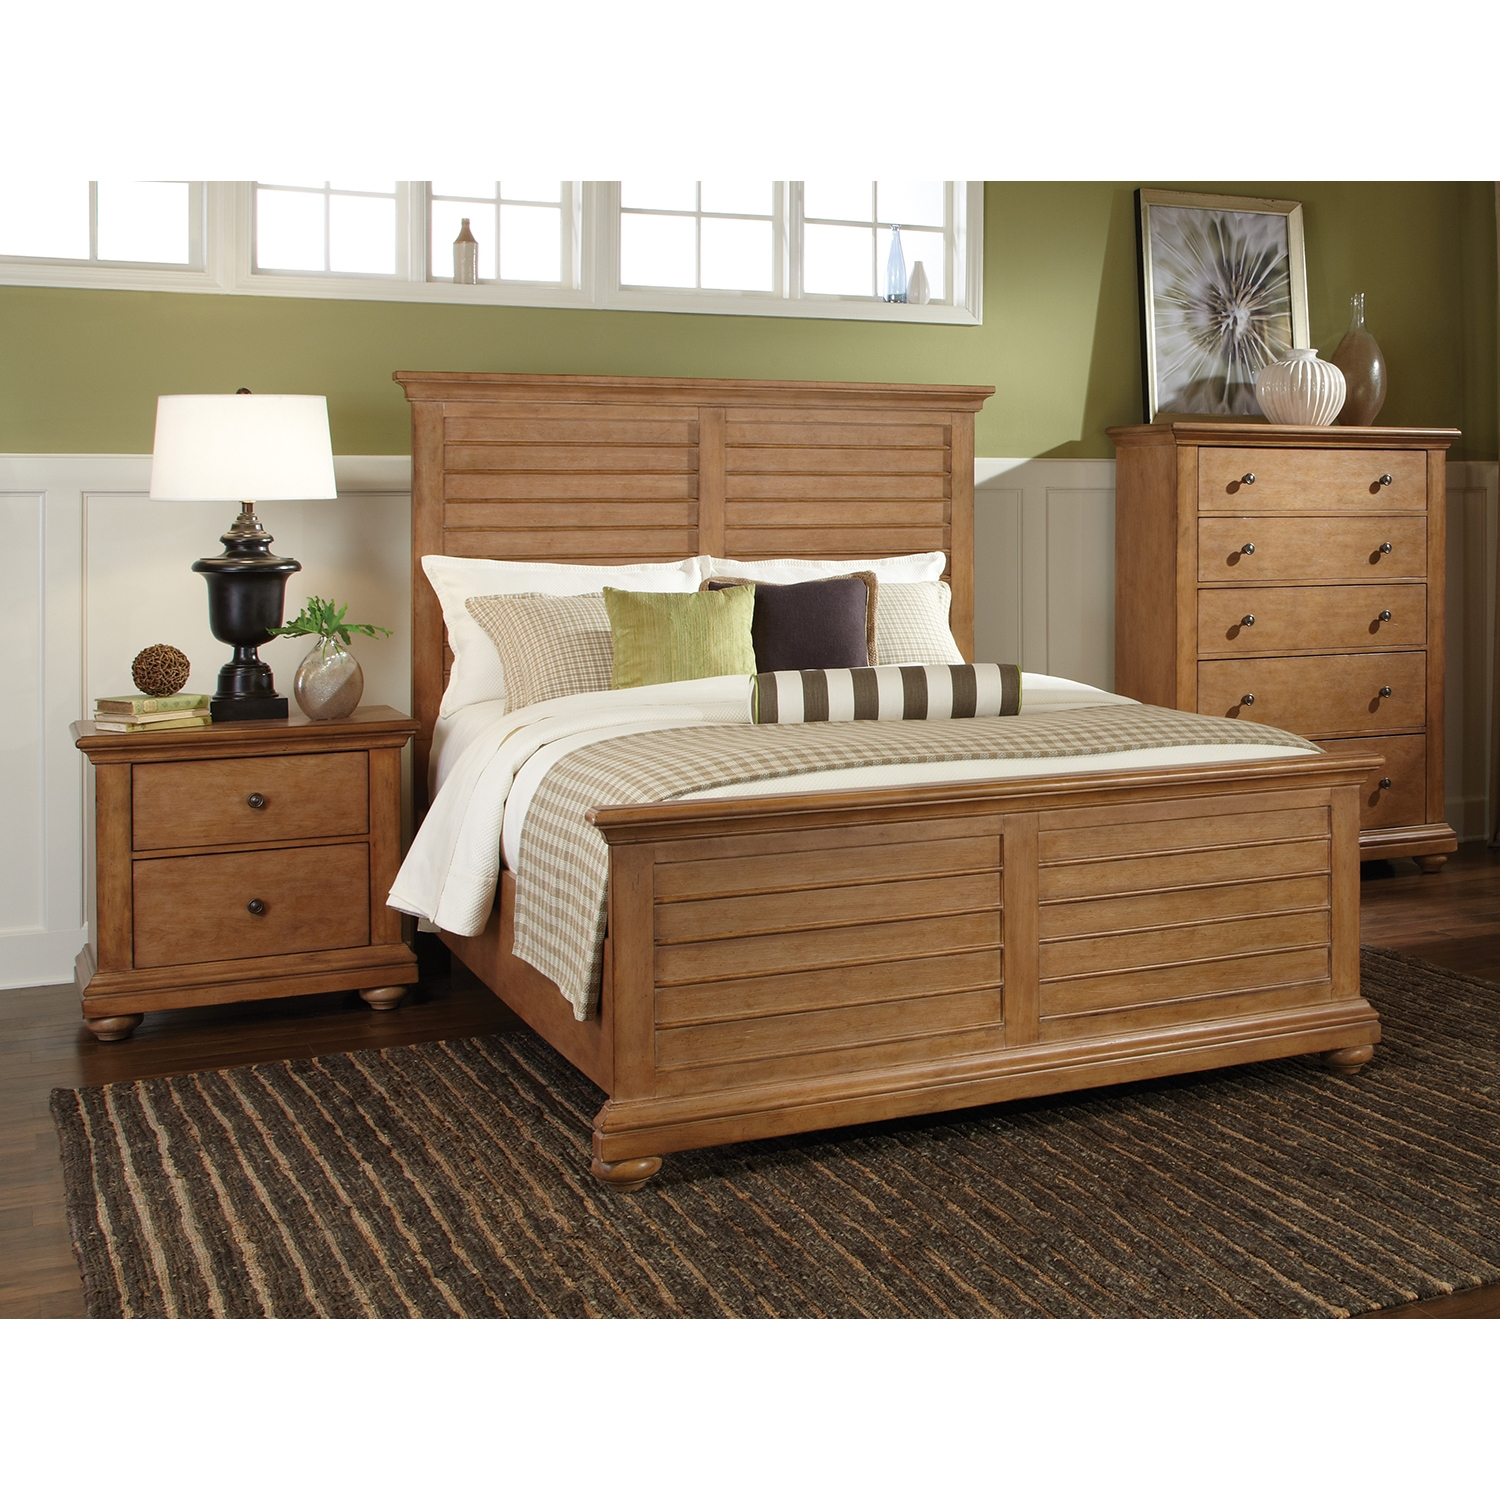 Pathways 2-Drawer Nightstand in Sandstone - AW-5100-420